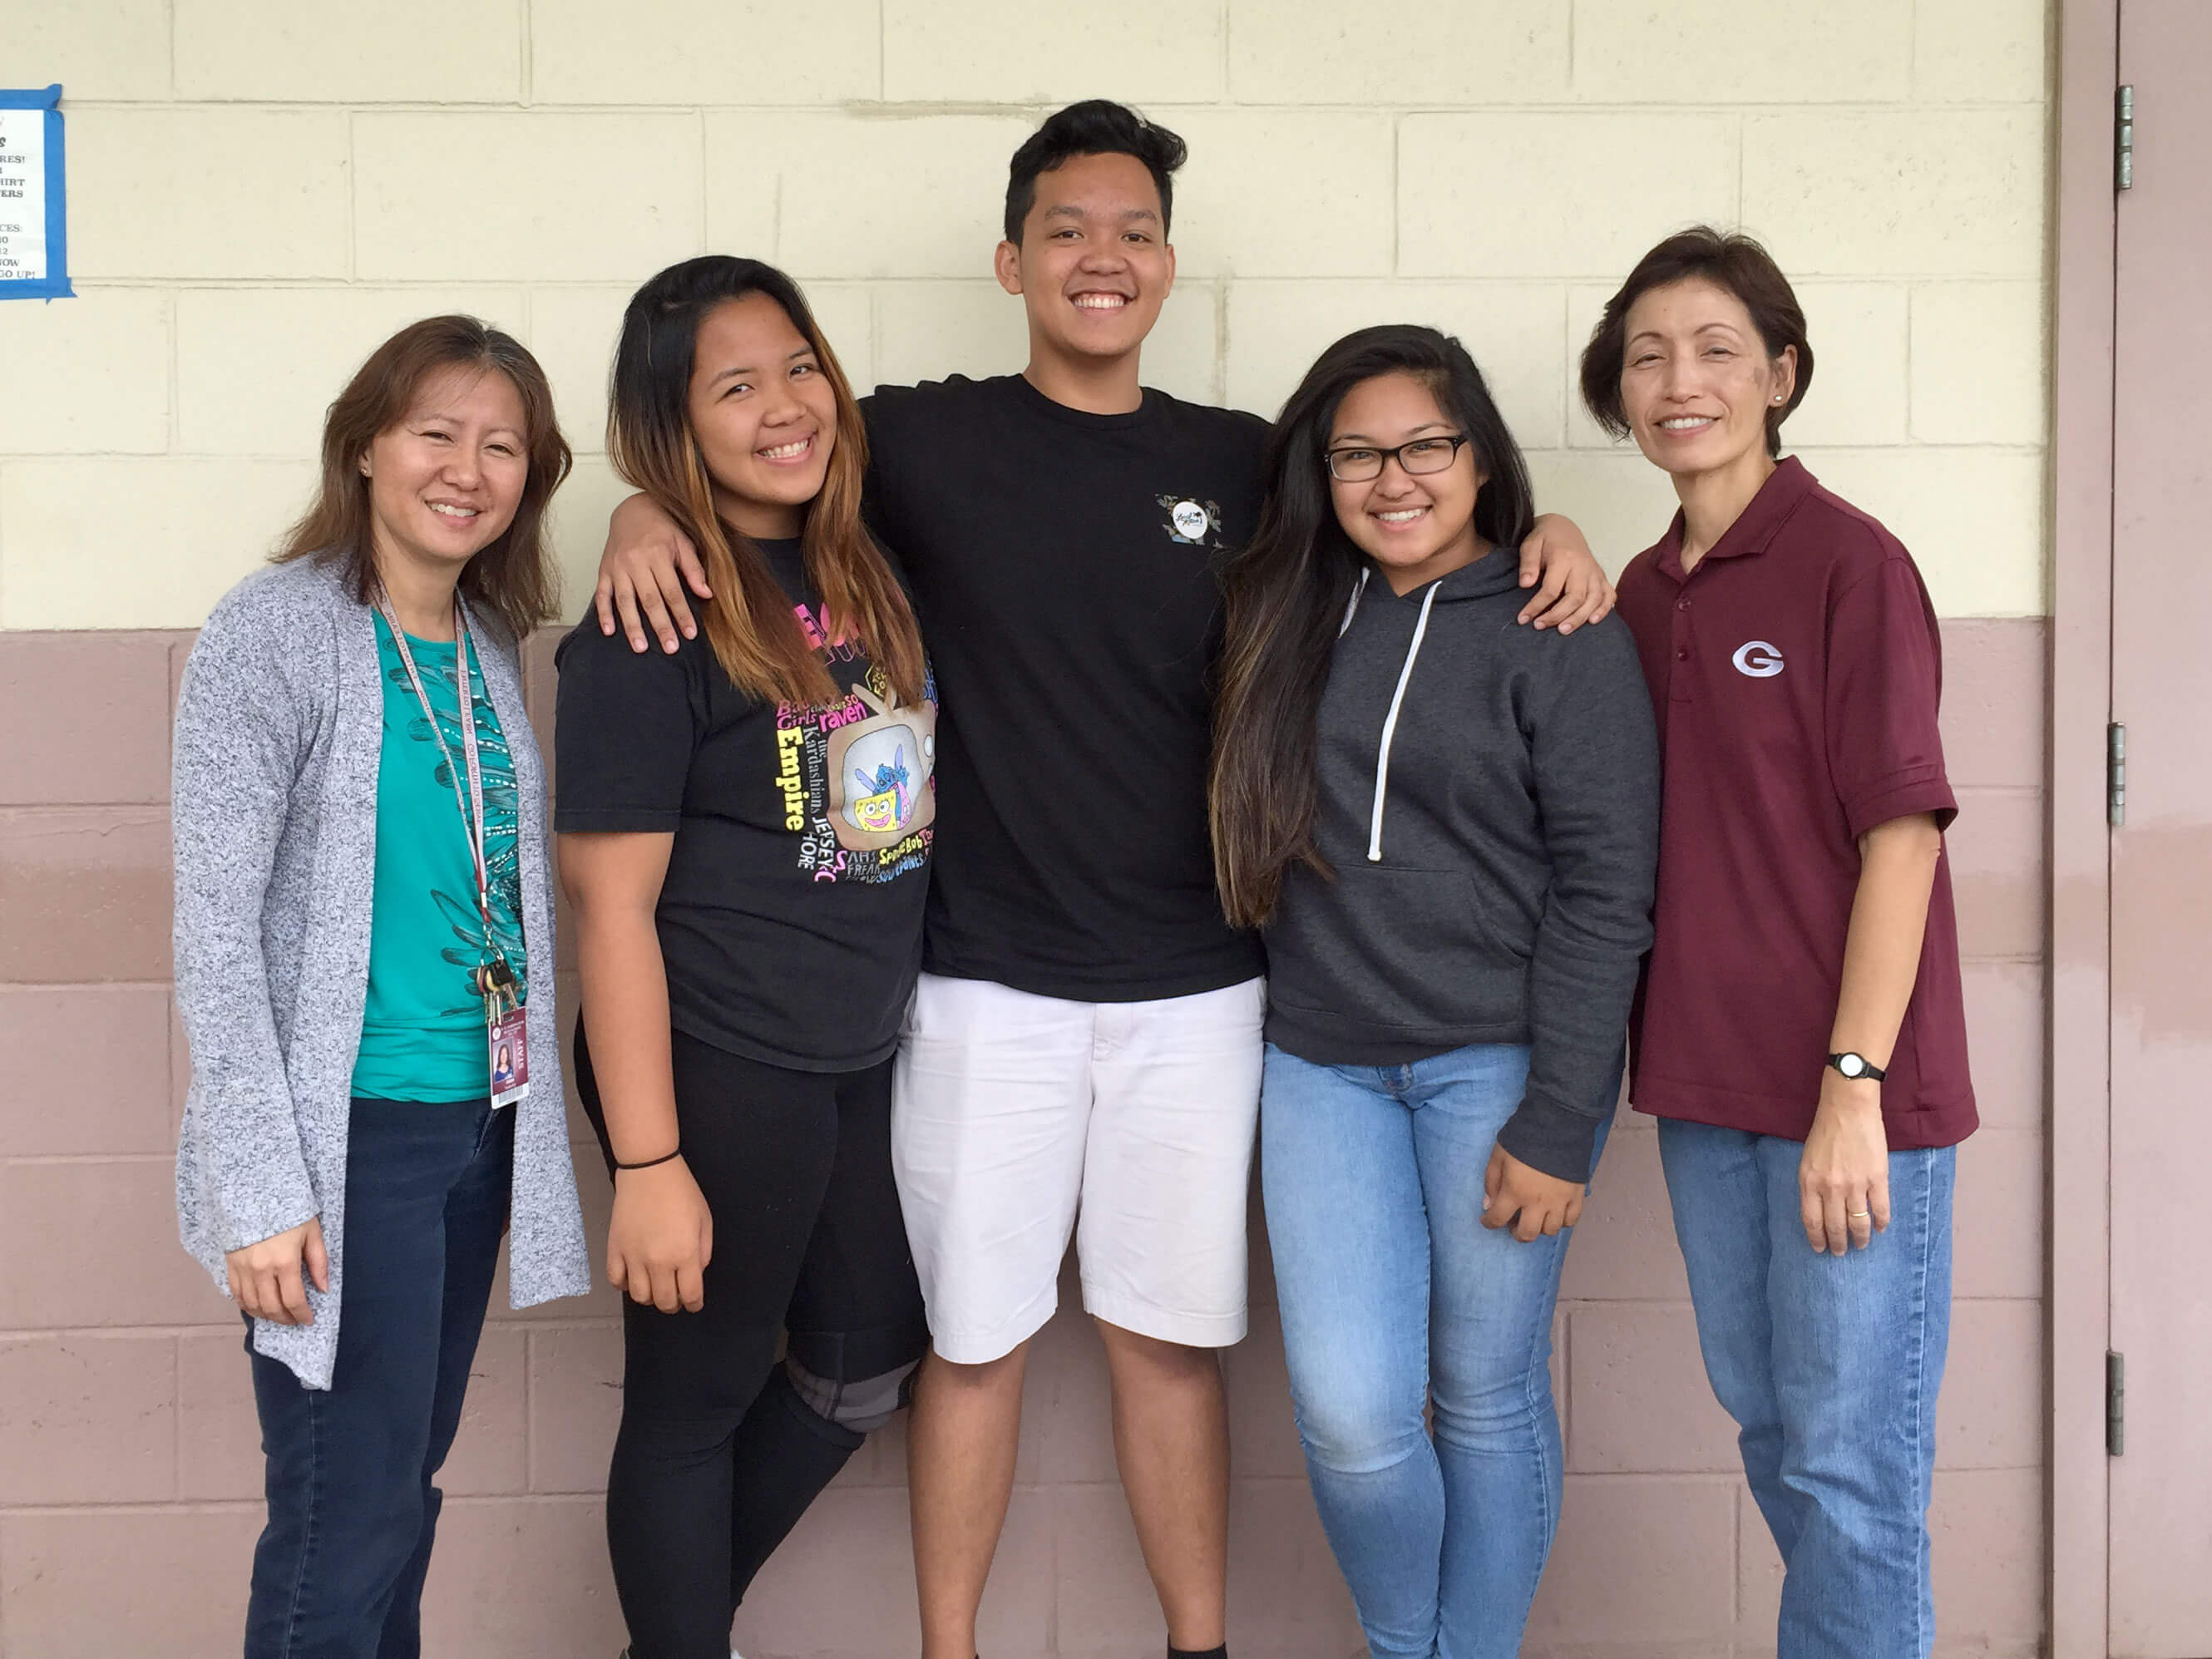 First Community Innovation awardees! Junior group from the Farrington Jigh School Health Academy in Kalihi. From left to right: Alette Yoshii-Ho (project advisor), Lovely Calip, Marc Rollon, Queen Dela Cruz, Glenda Lau (Health Academy lead teacher).